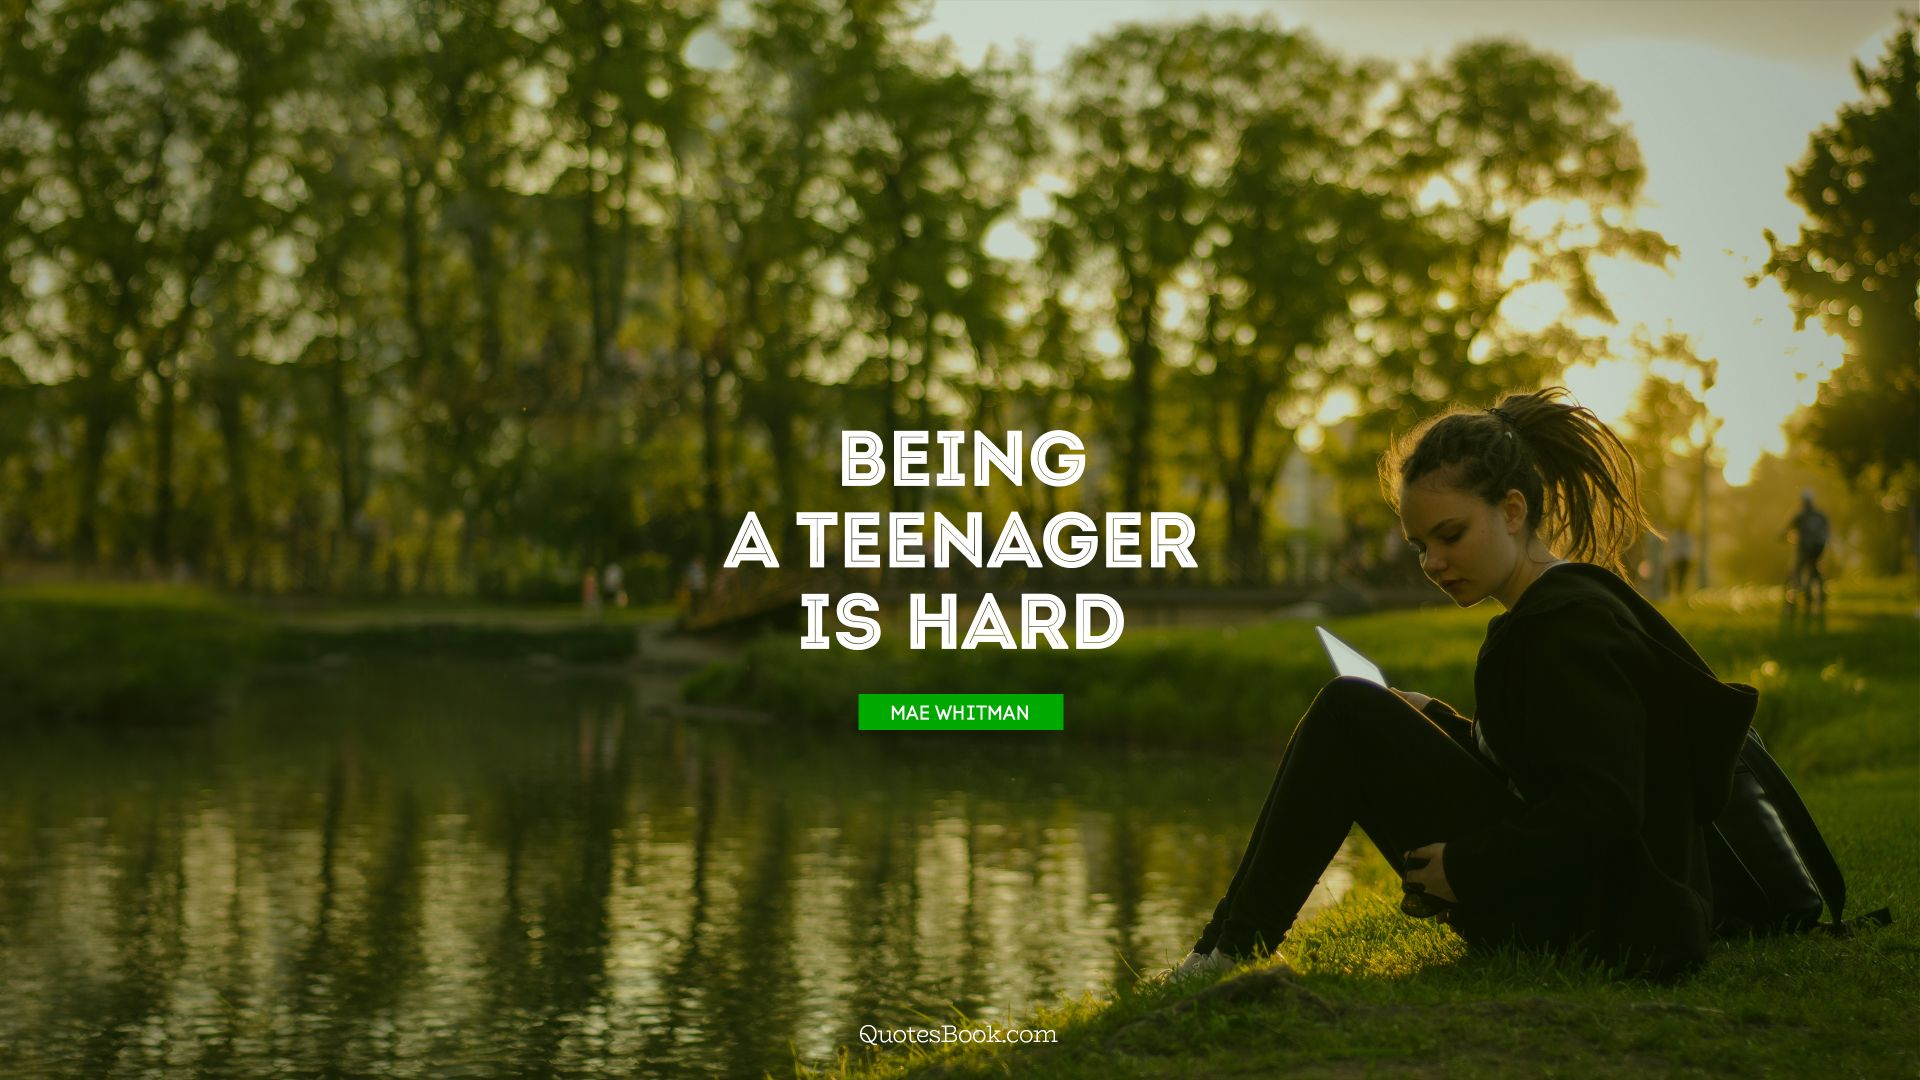 Being a teenager is hard. - Quote by Mae Whitman